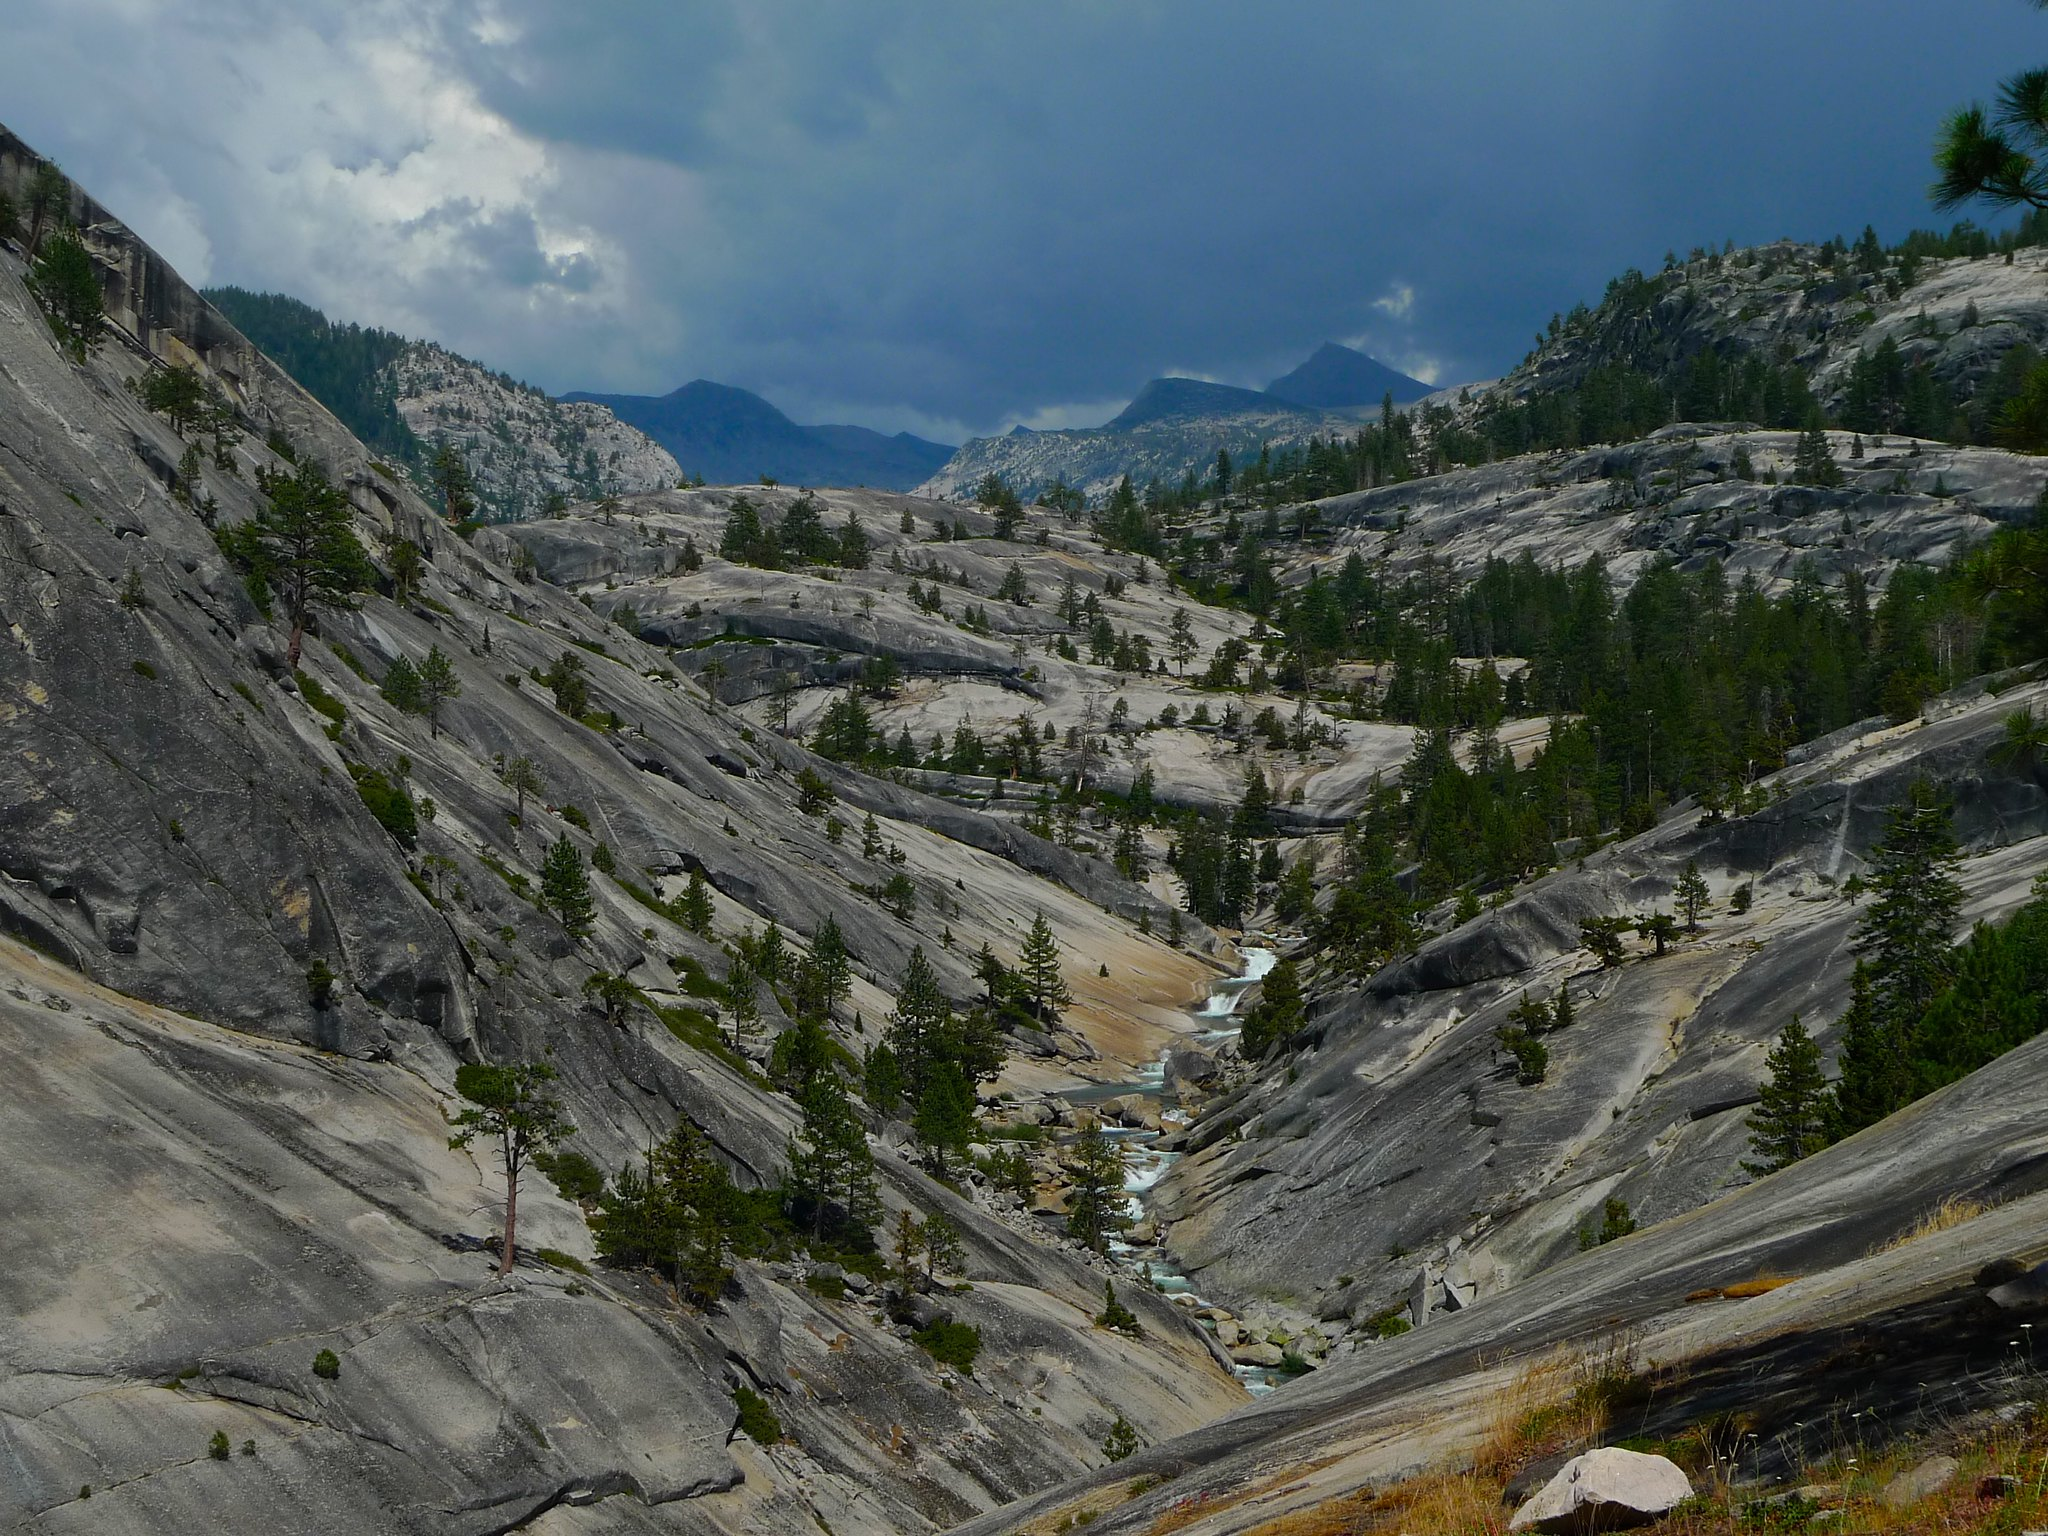 Looking up the Merced River towards Vogelsang. Again I find myself racing a thunderstorm.